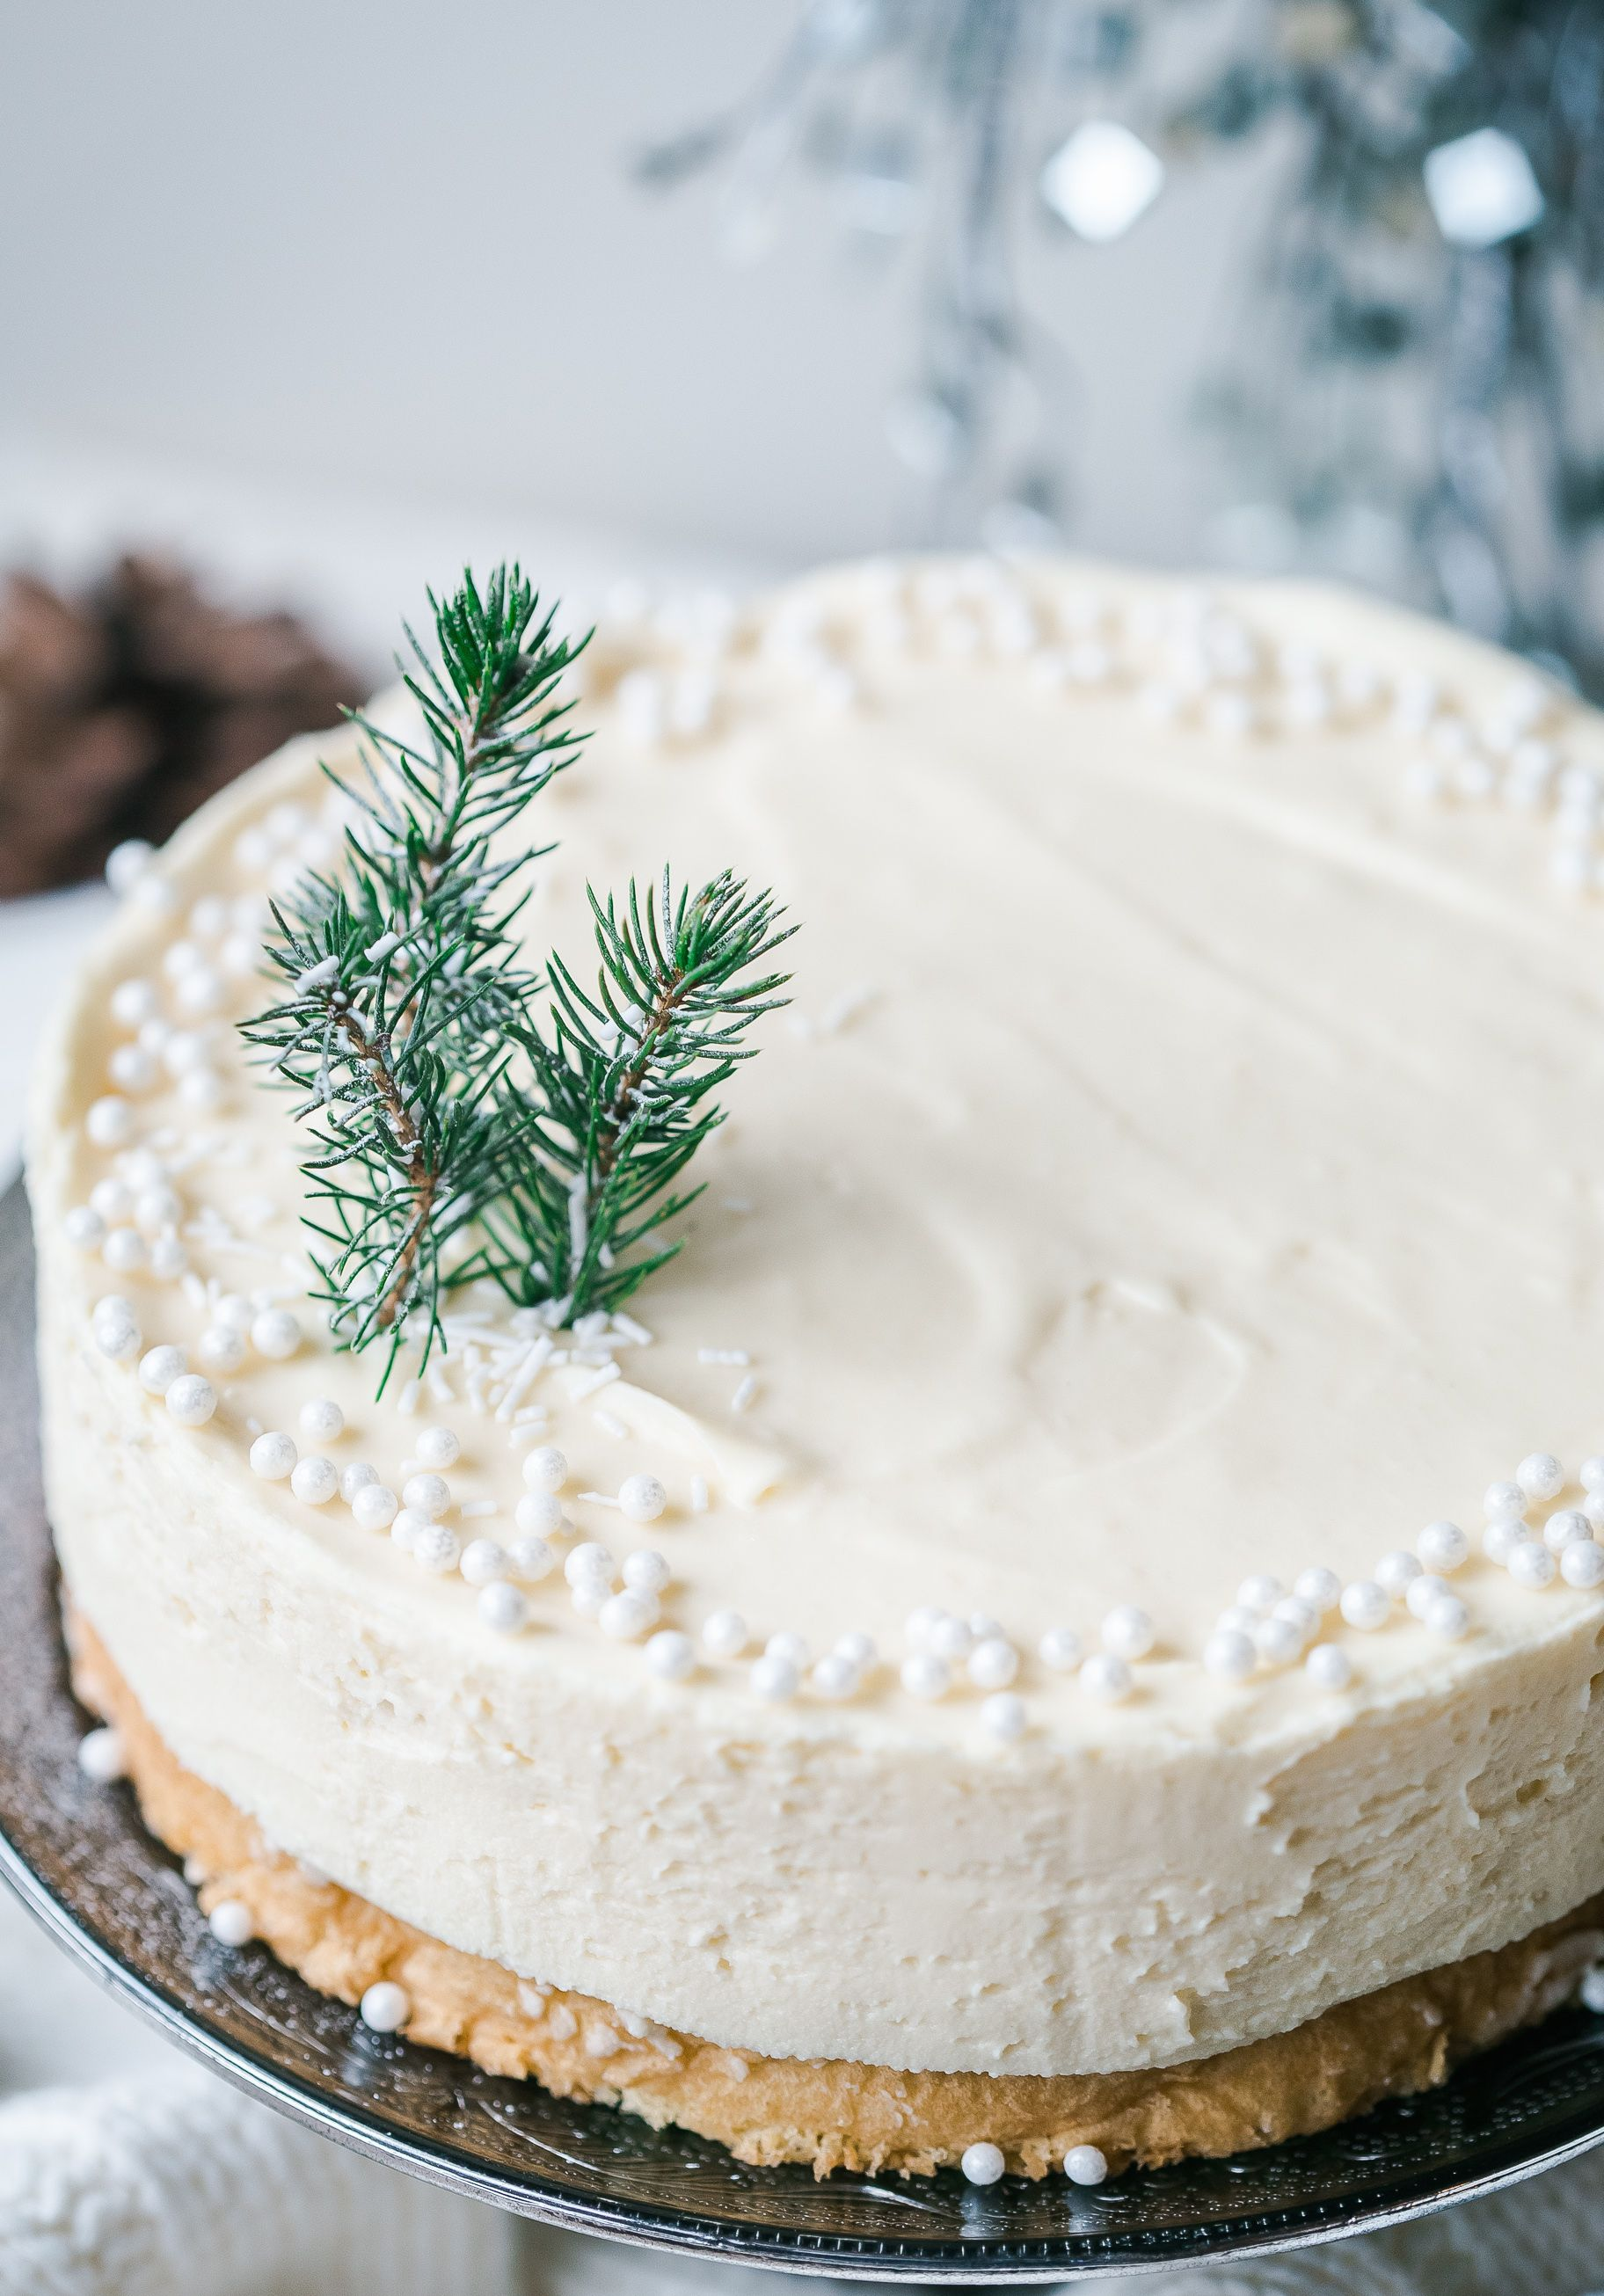 20 Best Holiday Desserts Easy Recipes For Christmas Dessert Ideas